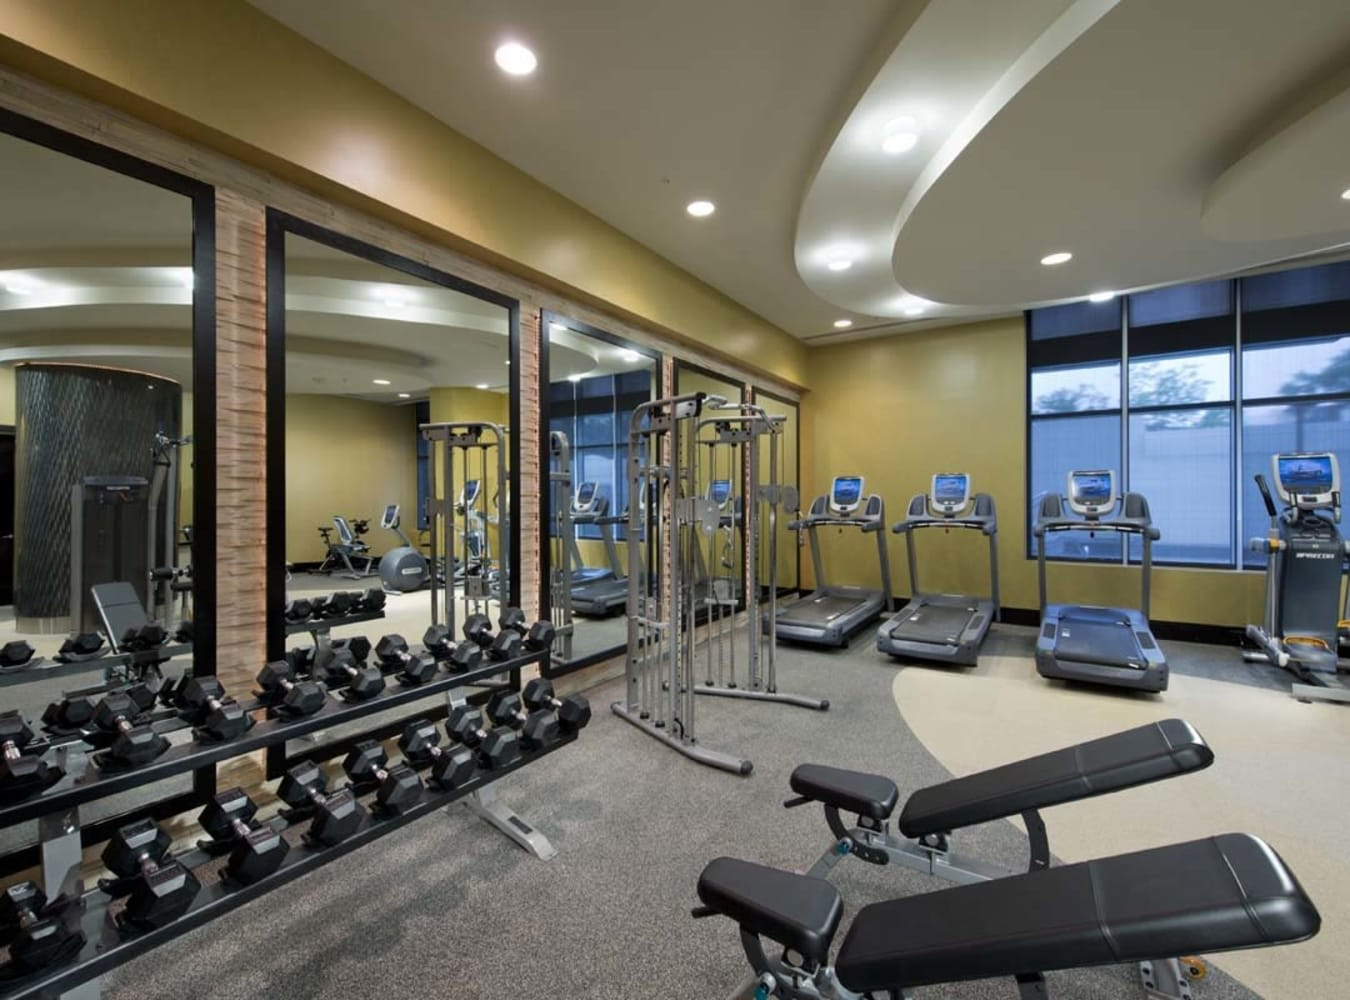 A fitness center with individual workout stations at Solaire 1150 Ripley in Silver Spring, Maryland